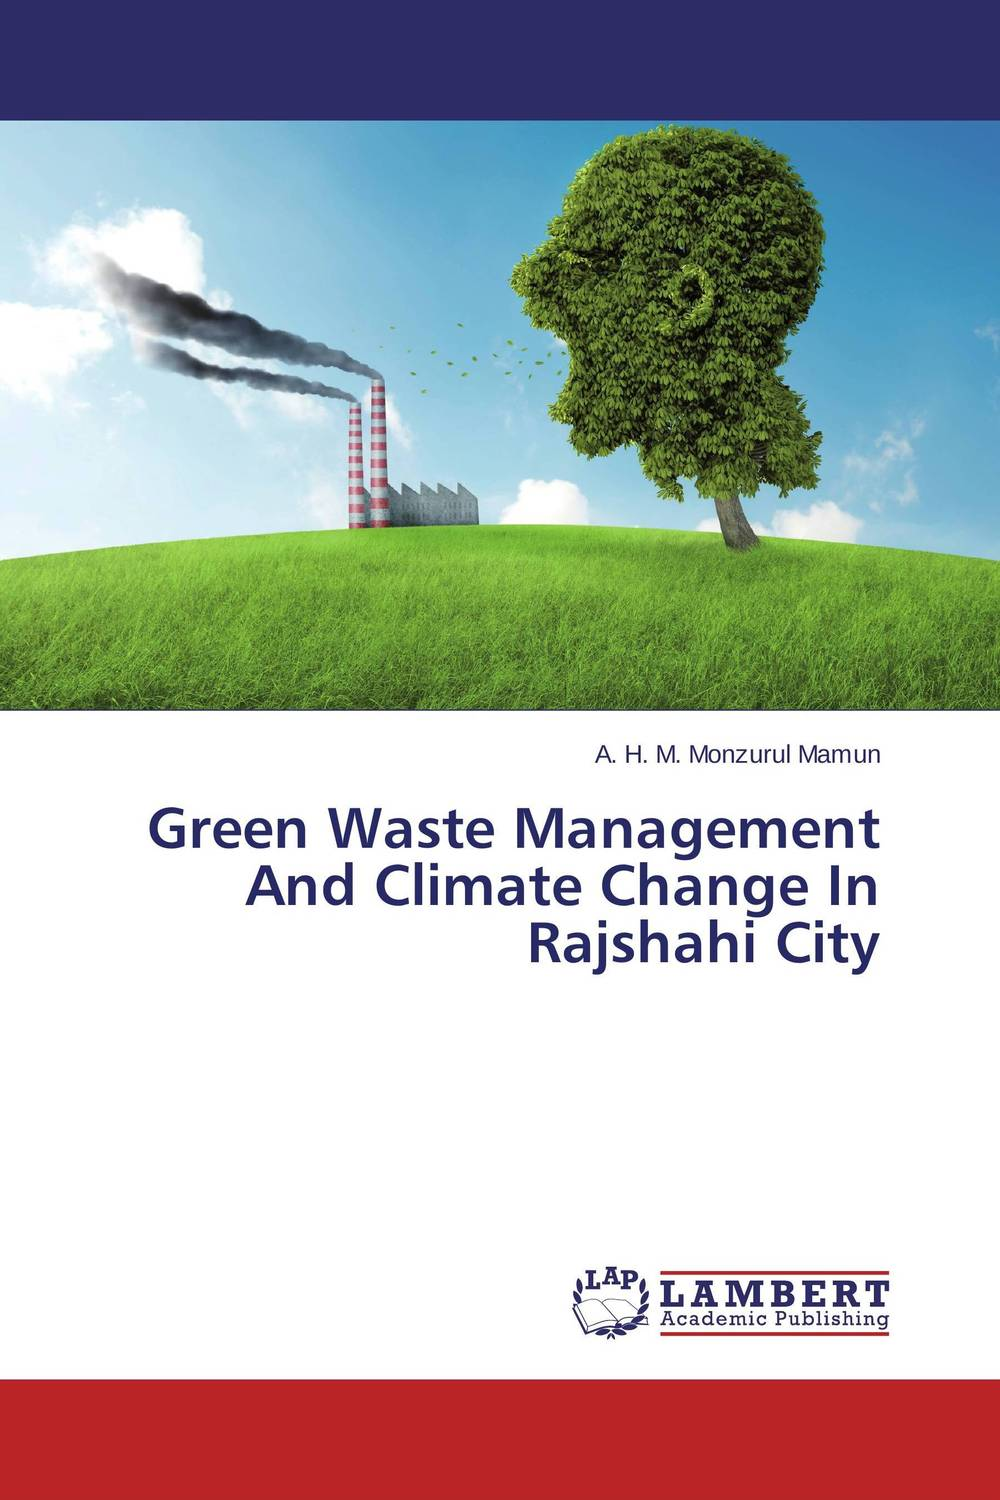 Green Waste Management And Climate Change In Rajshahi City dereje azemraw senshaw potential greenhouse gas emission reduction from municipal solid waste